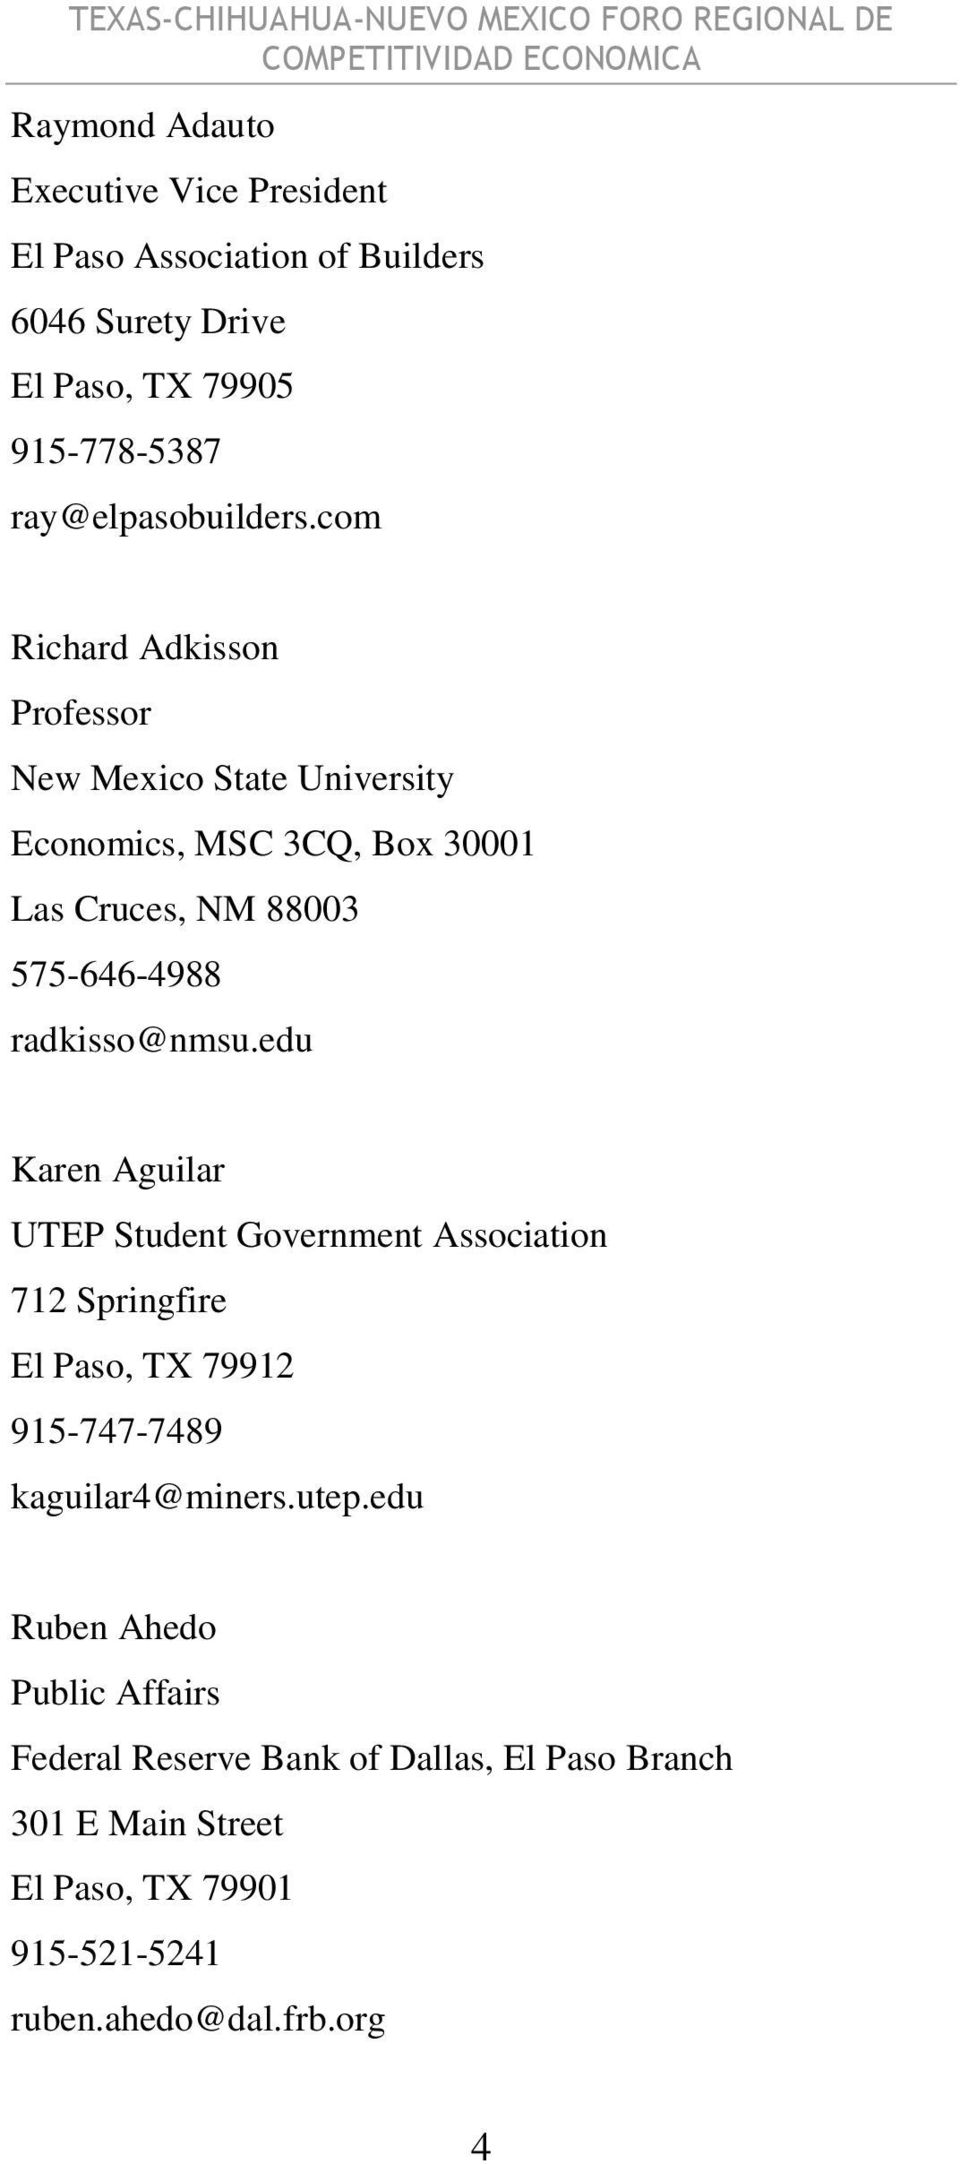 com Richard Adkisson Professor New Mexico State University Economics, MSC 3CQ, Box 30001 Las Cruces, NM 88003 575-646-4988